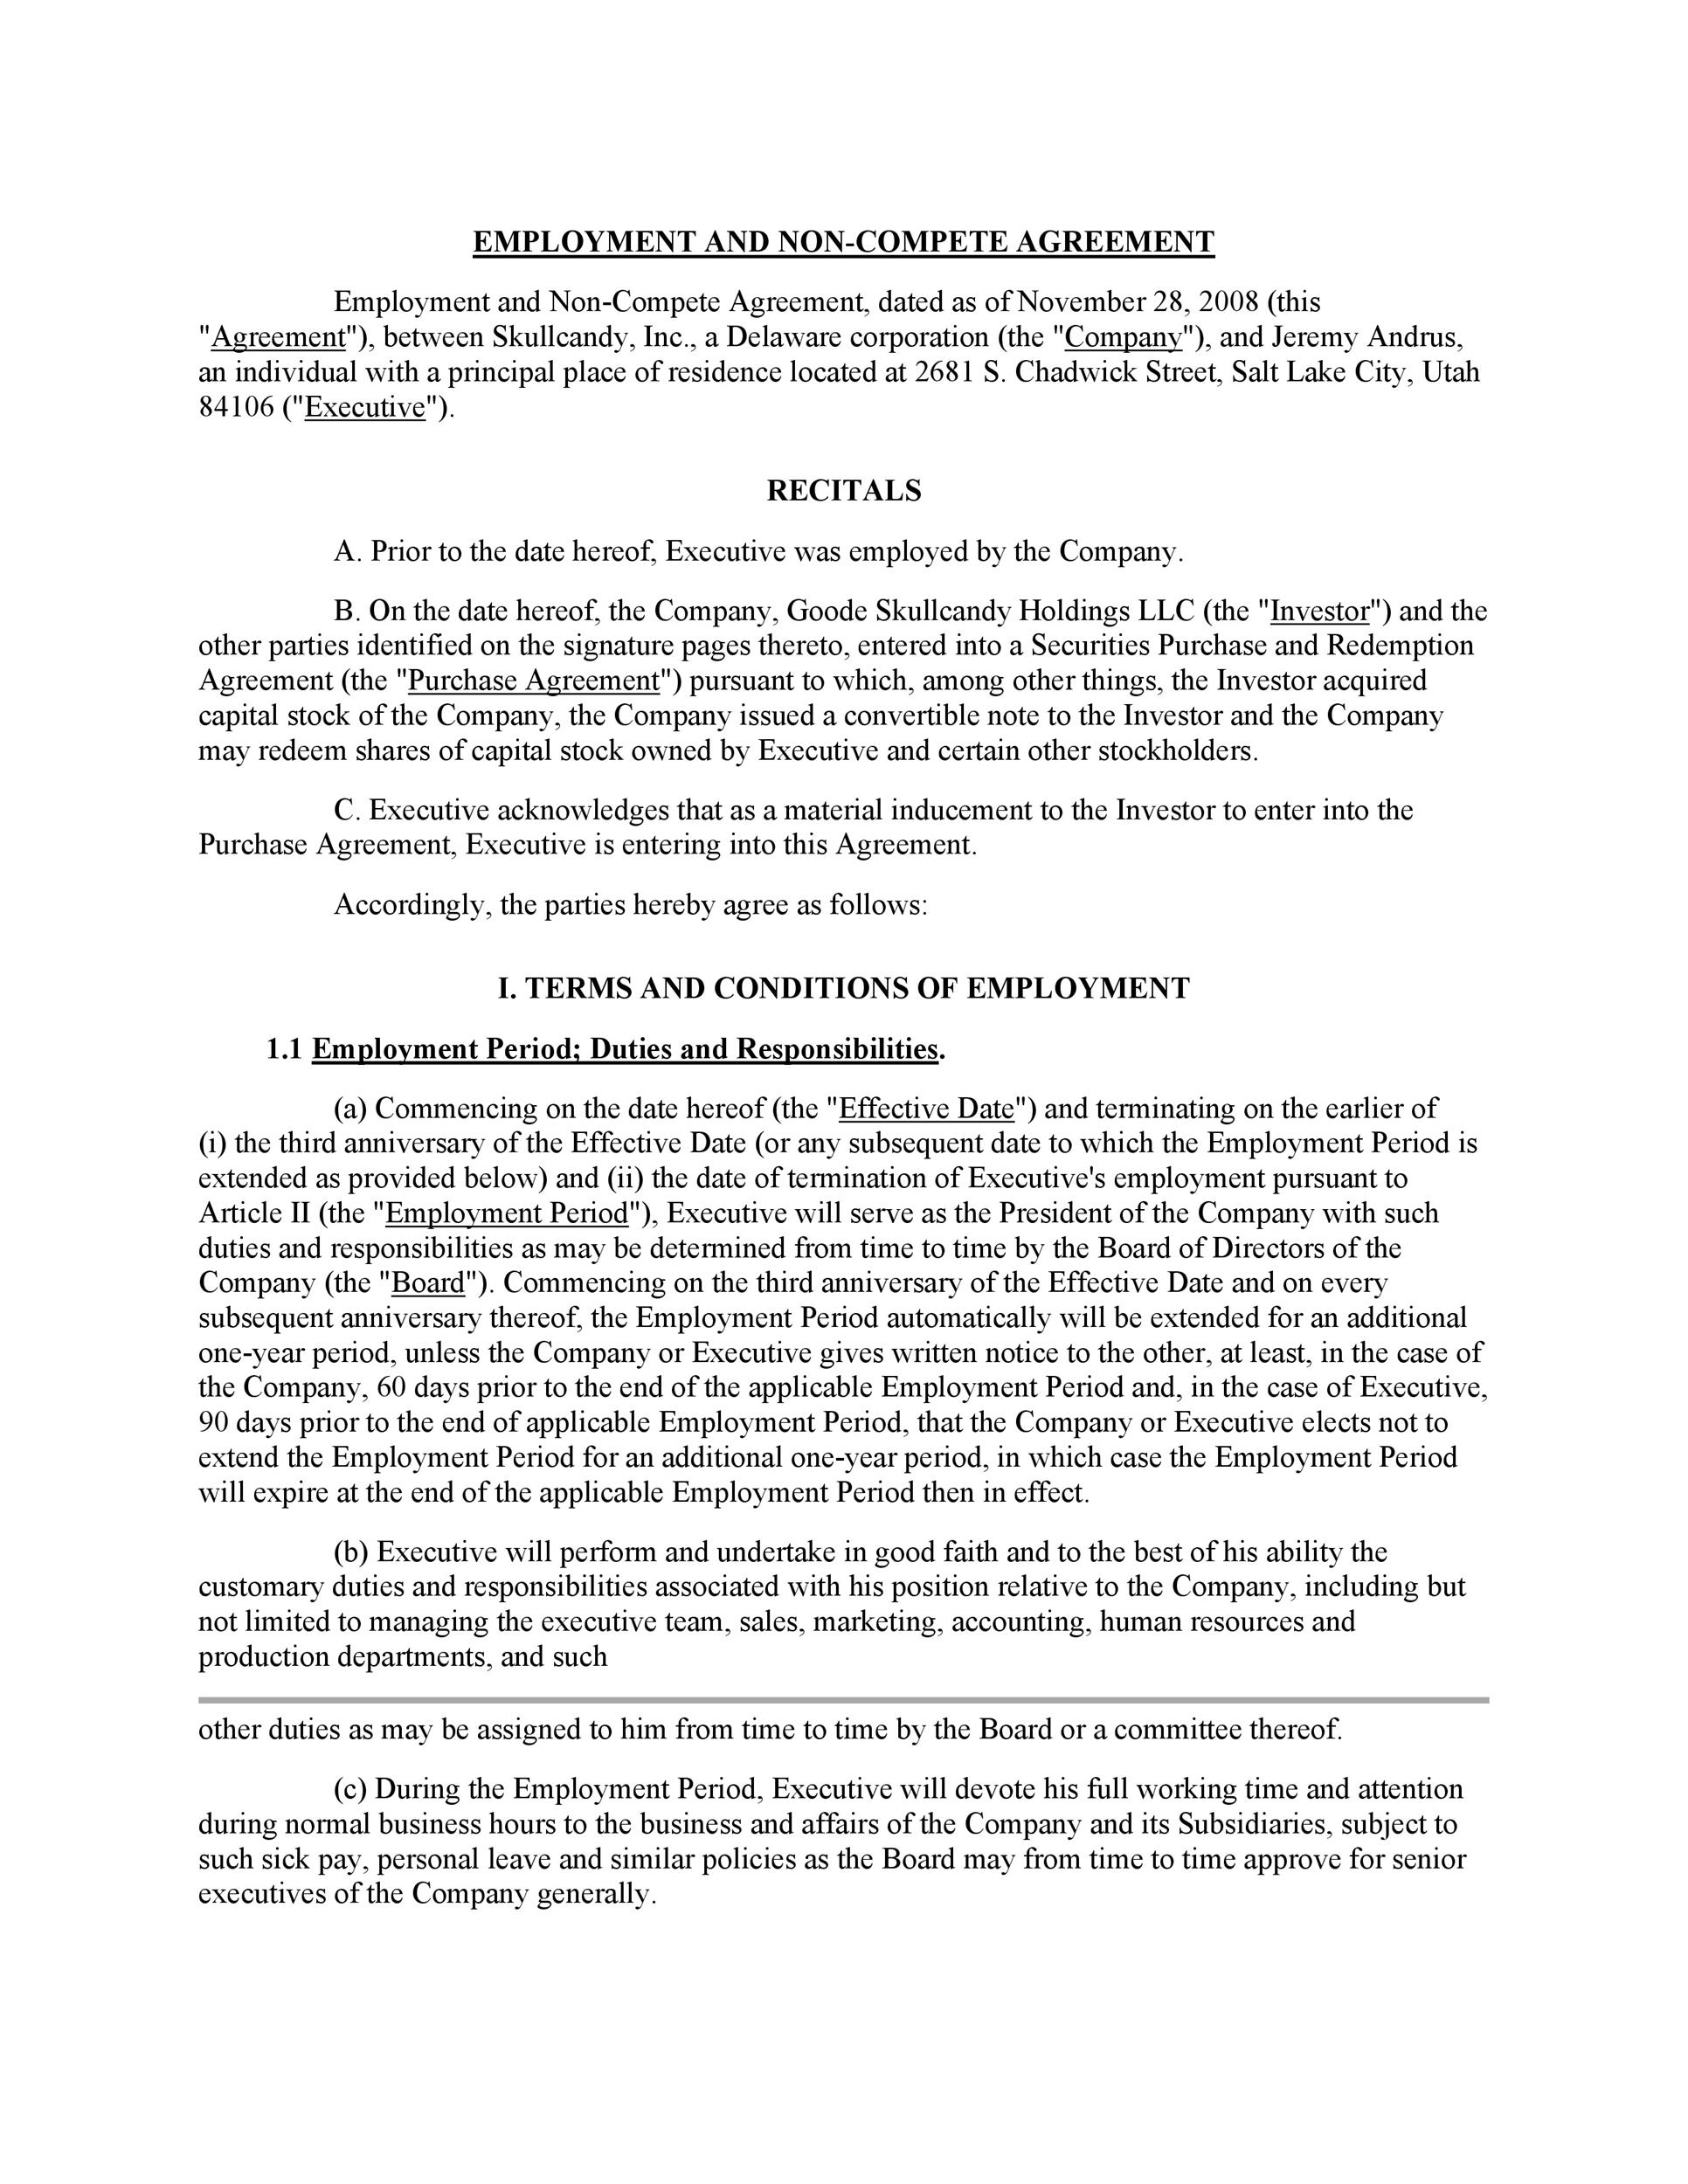 Non-Compete Agreement Template 11